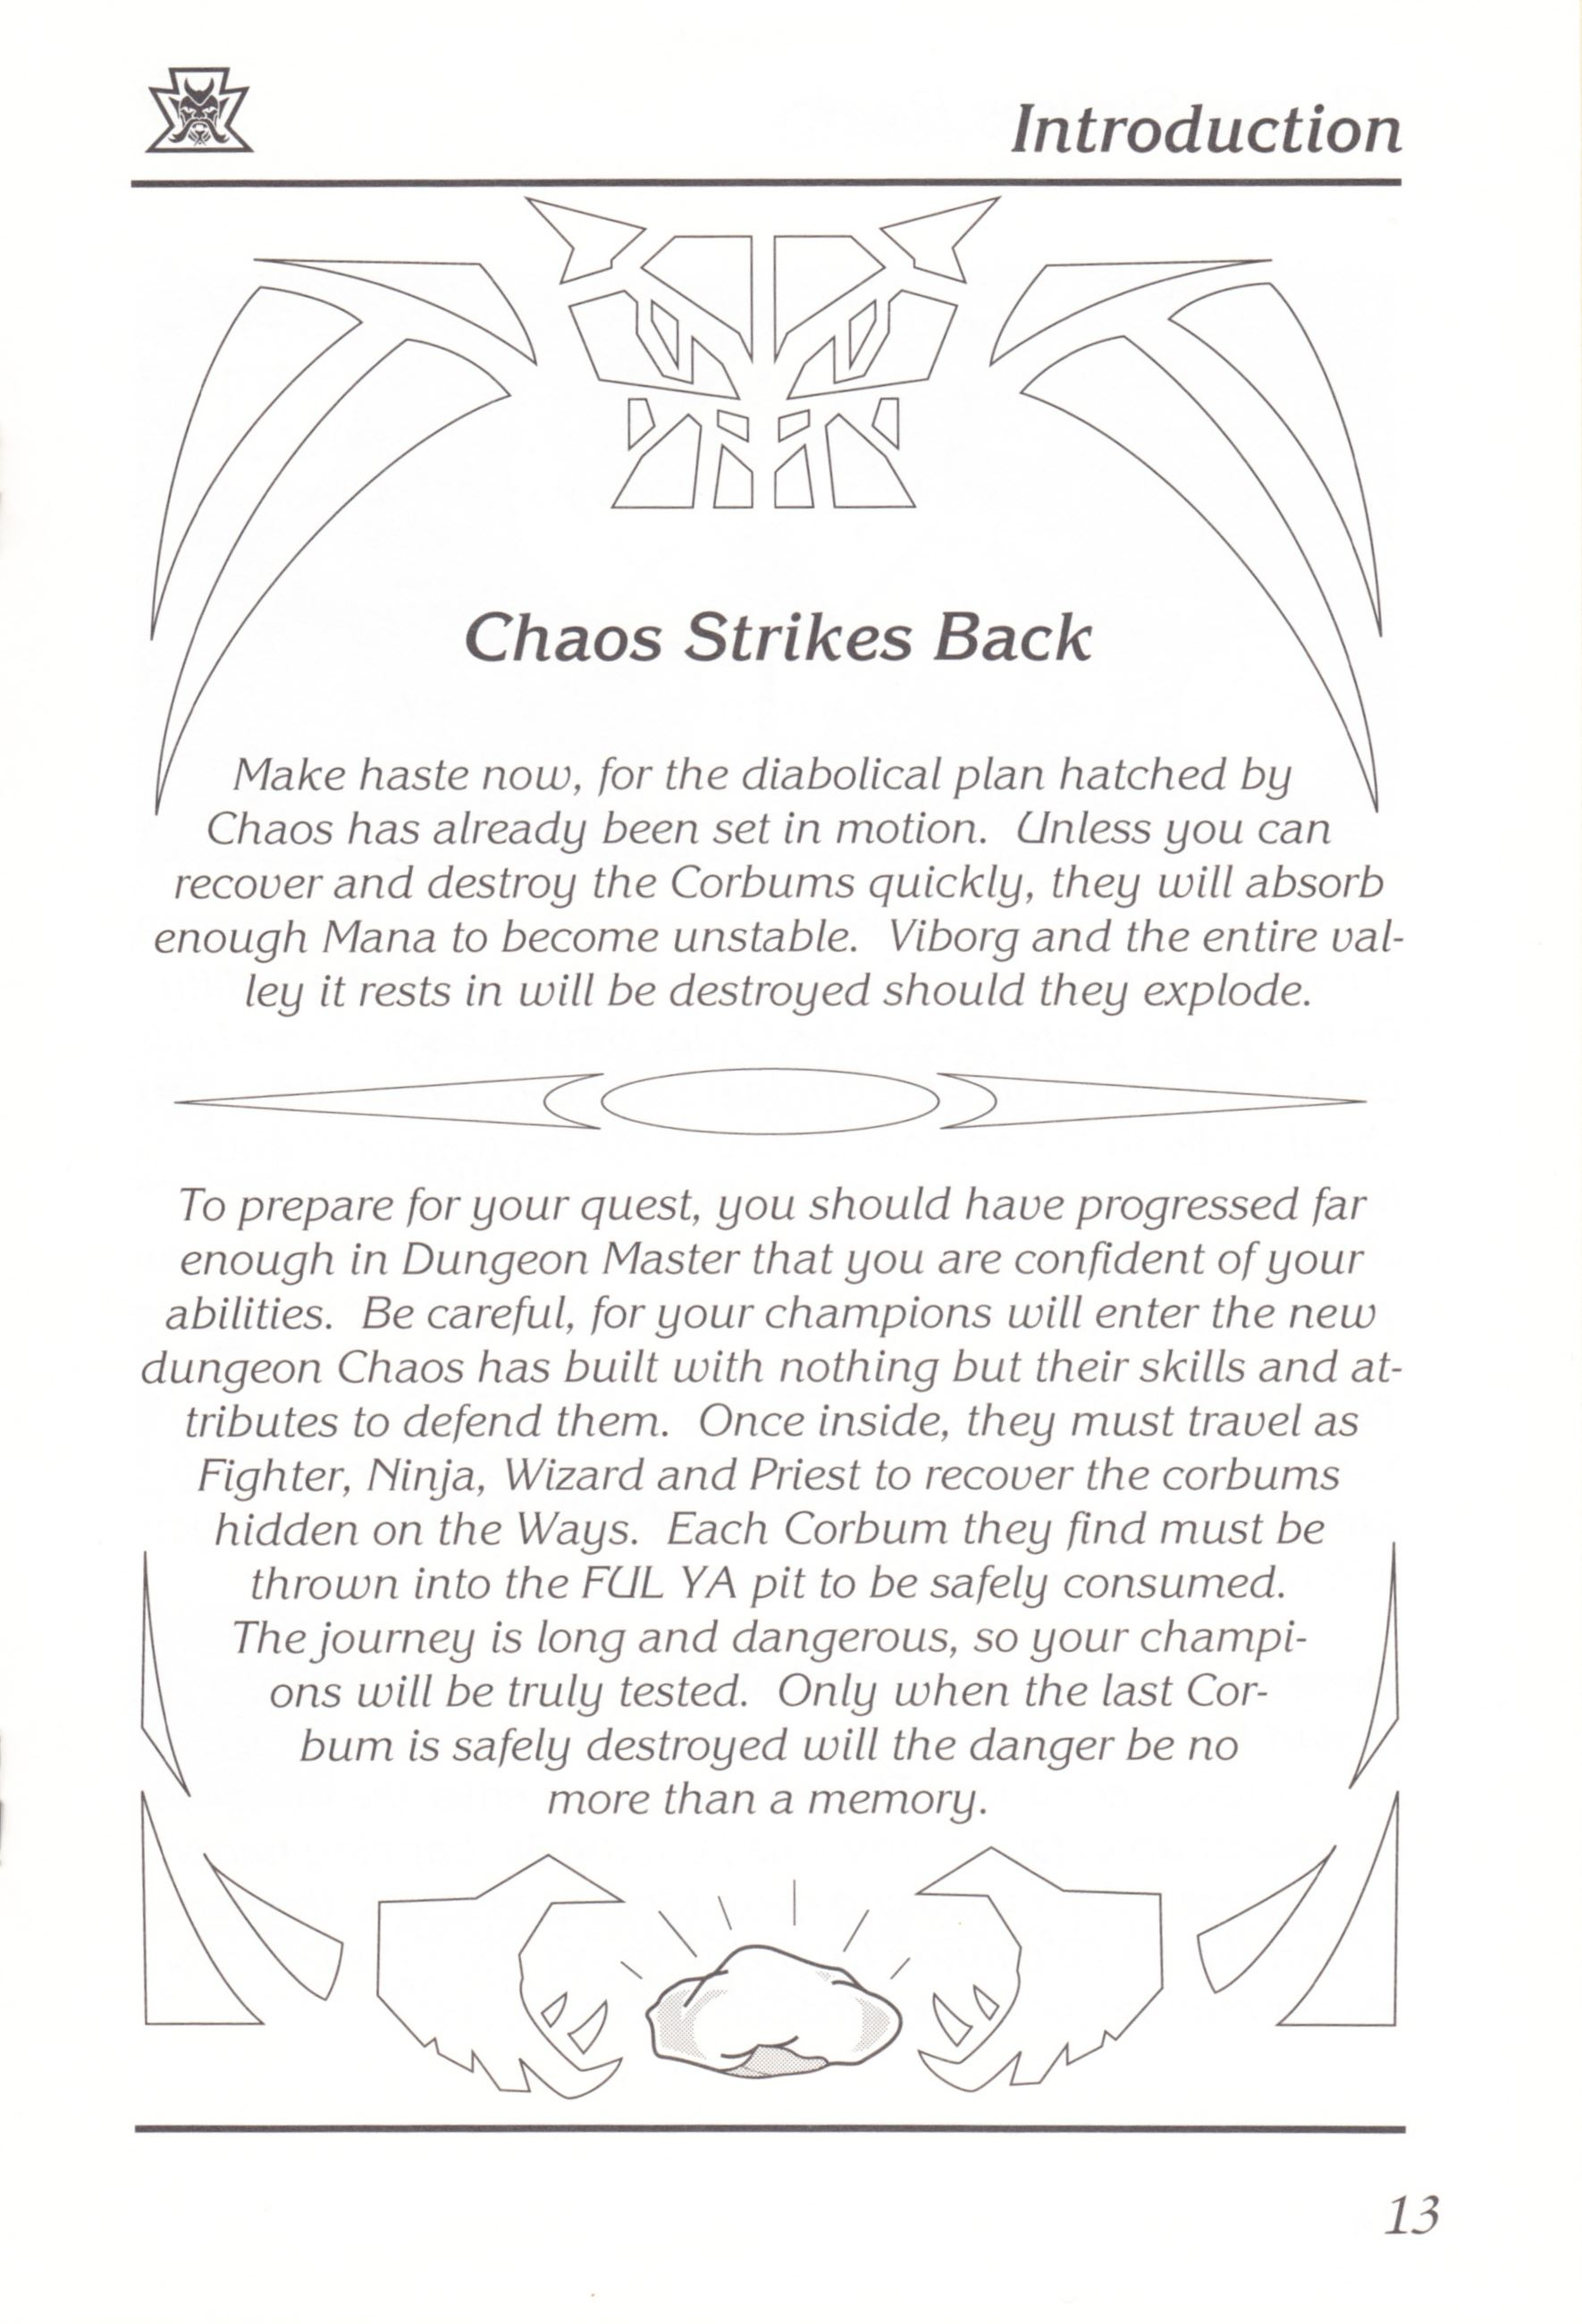 Game - Chaos Strikes Back - UK - Amiga - Manual - Page 015 - Scan